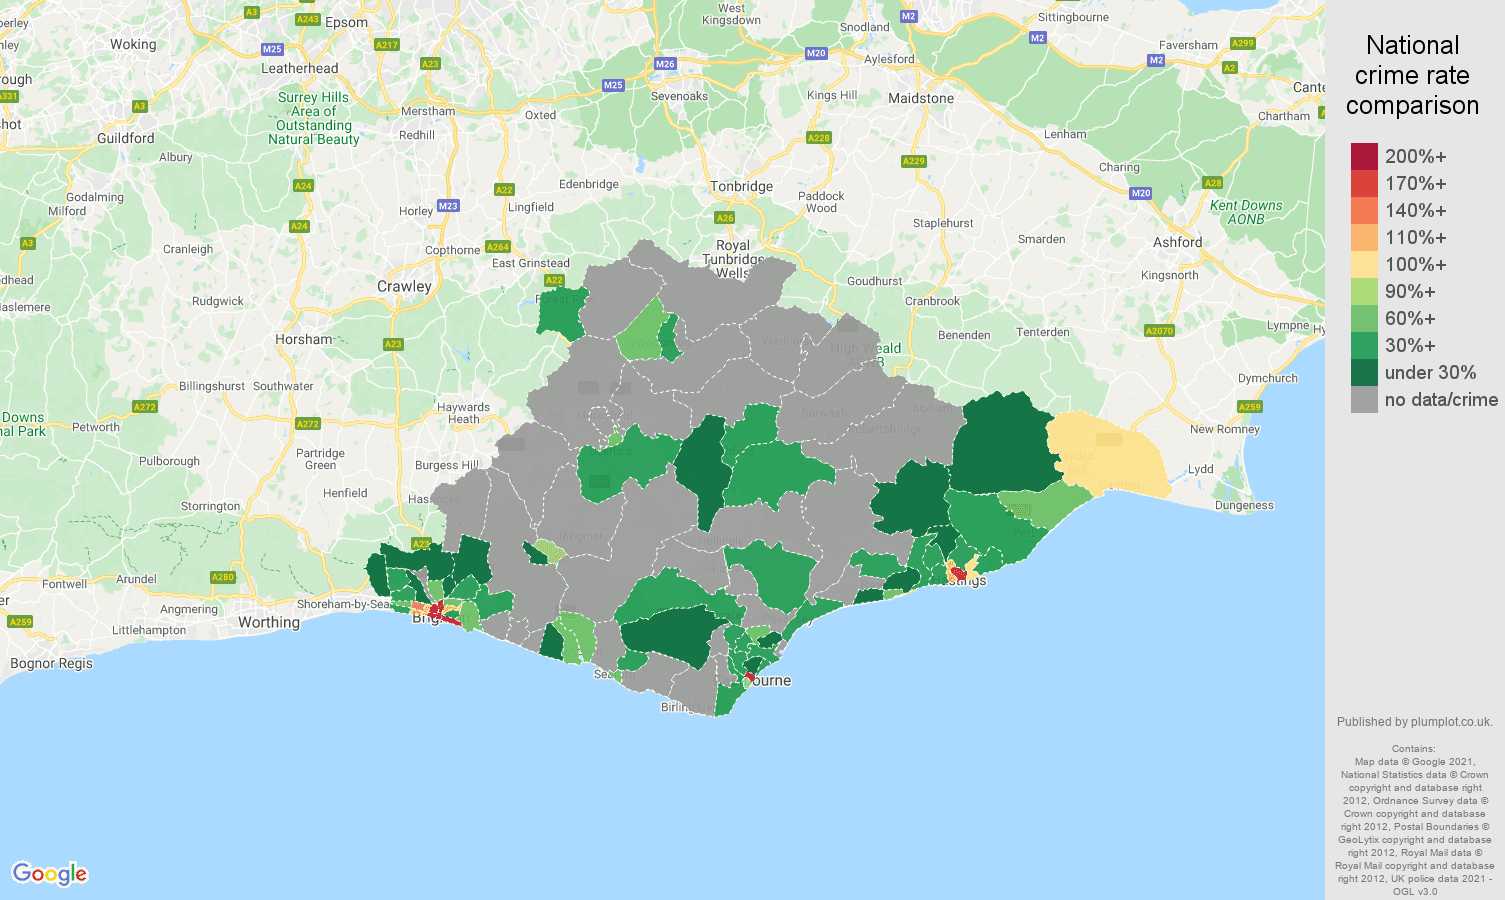 East Sussex theft from the person crime rate comparison map